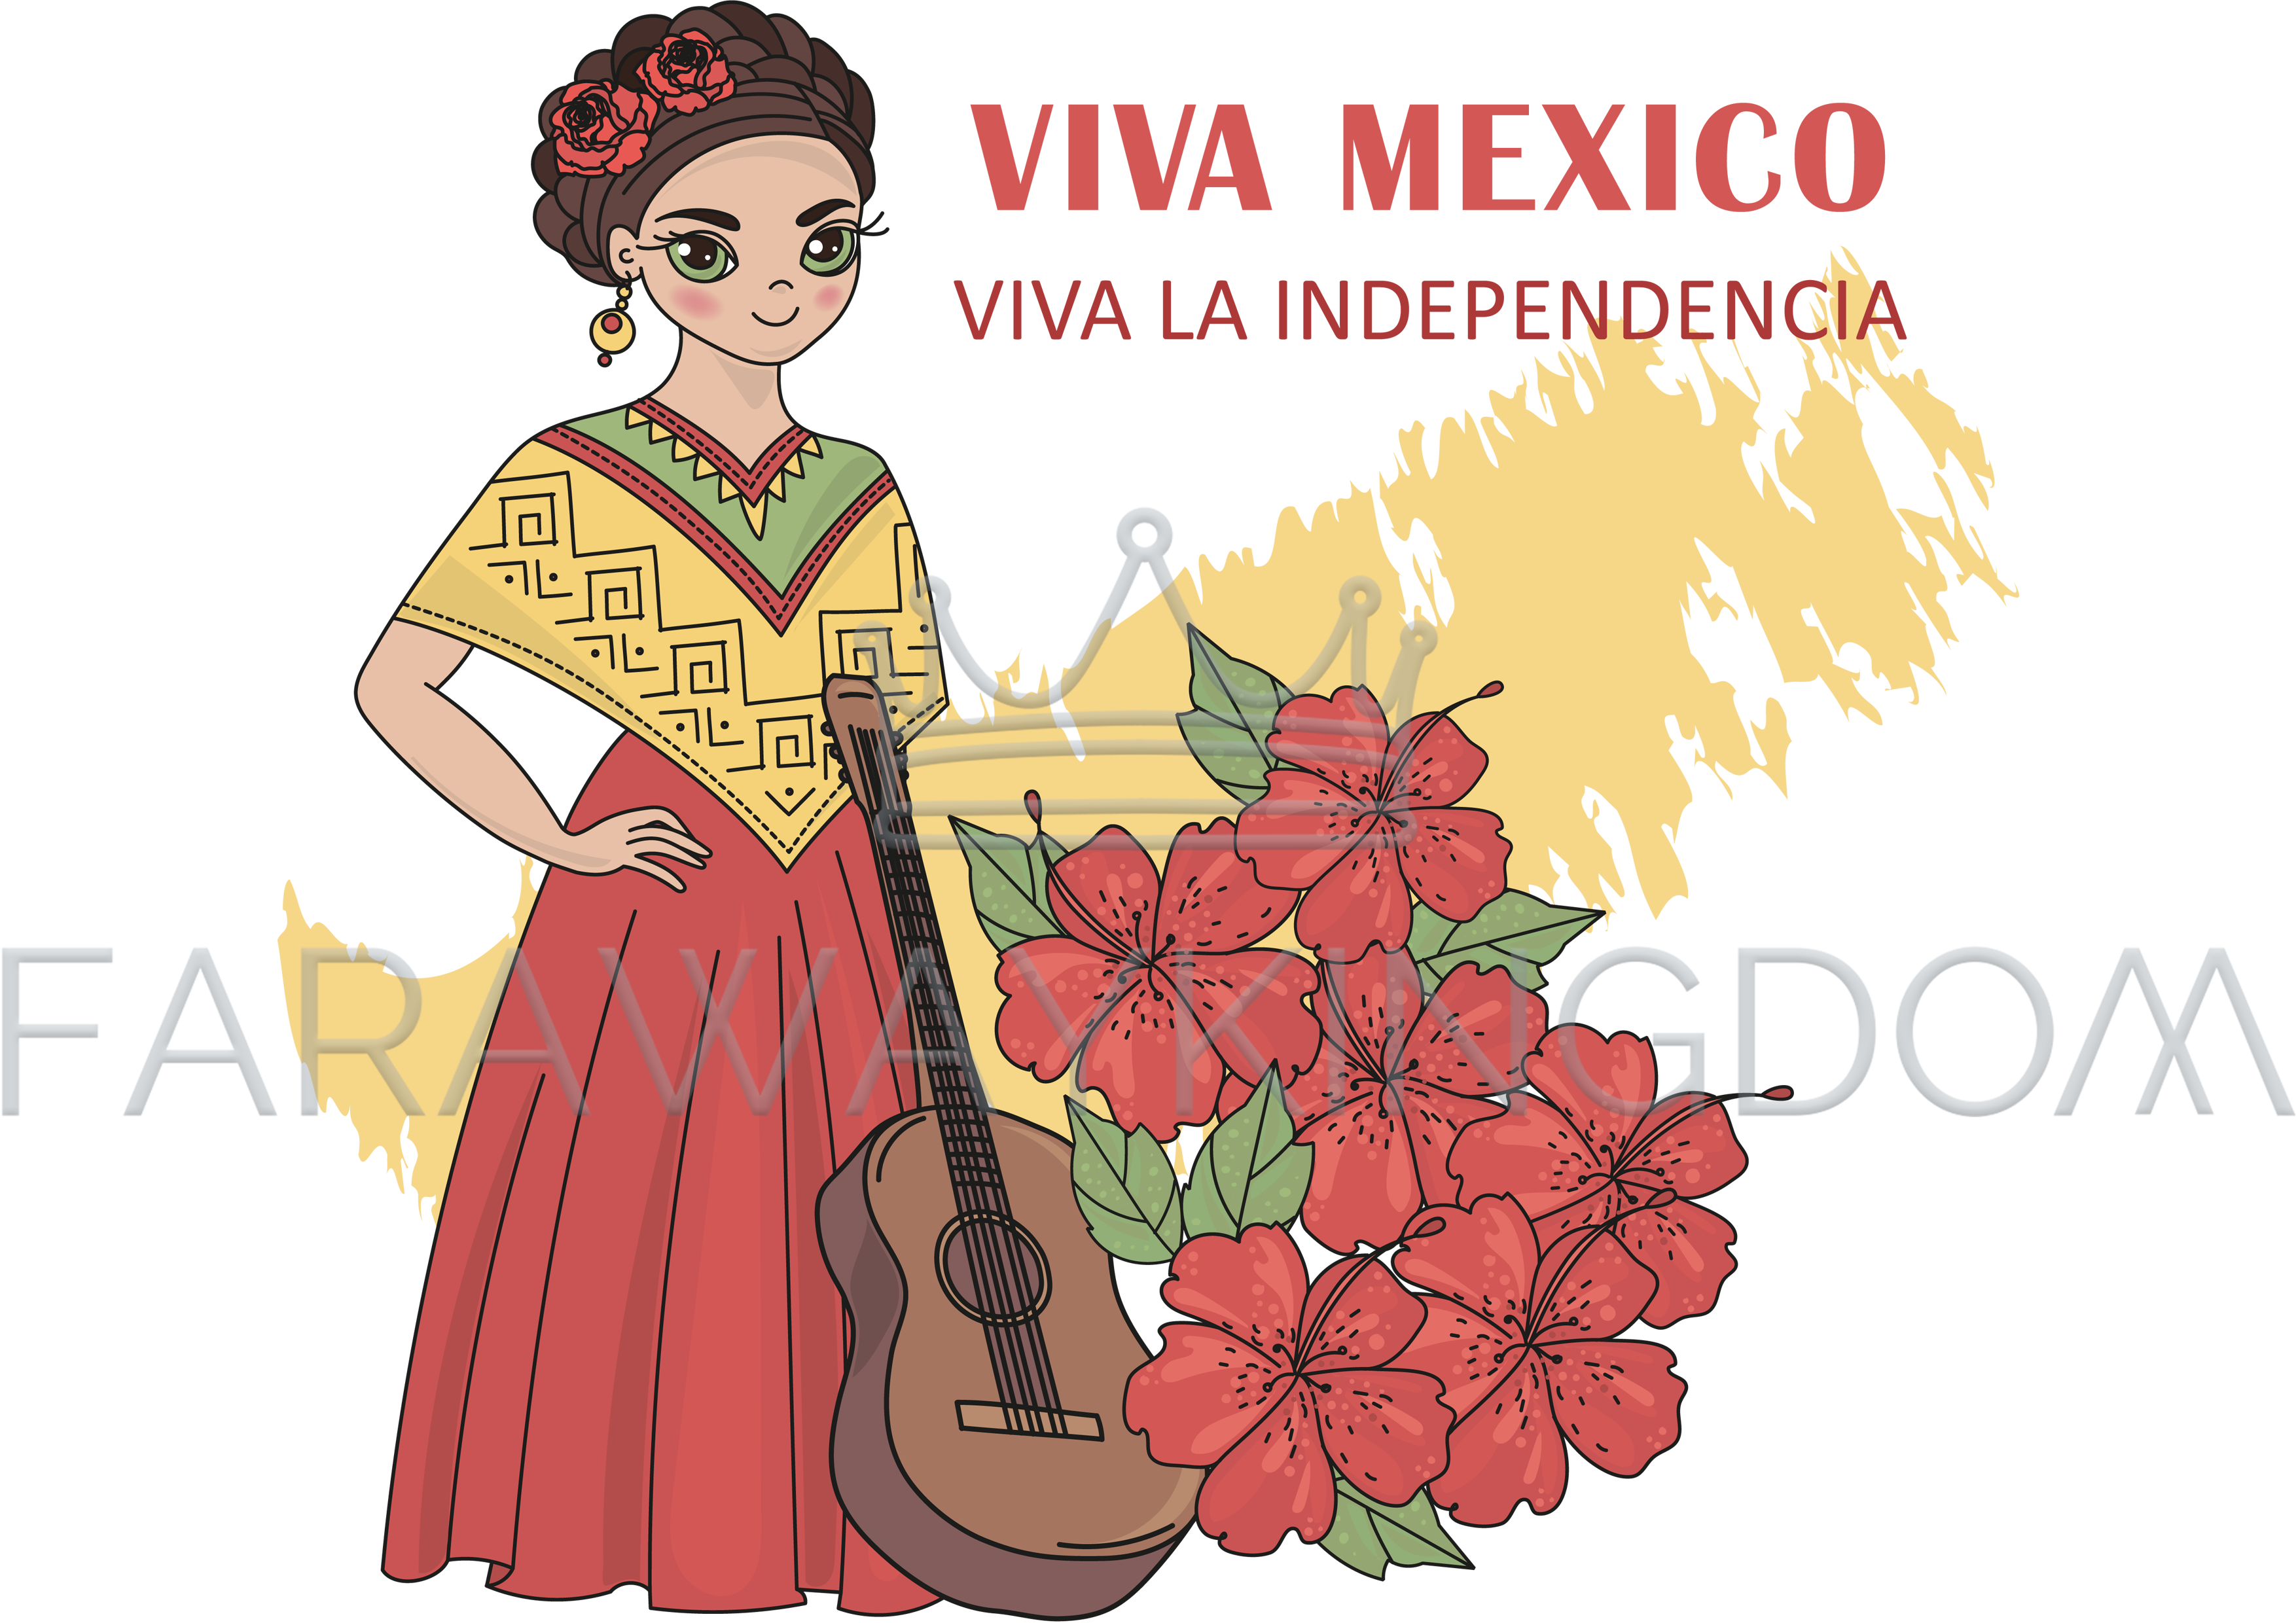 Mexican flowers vector png. Viva mexico travel illustration